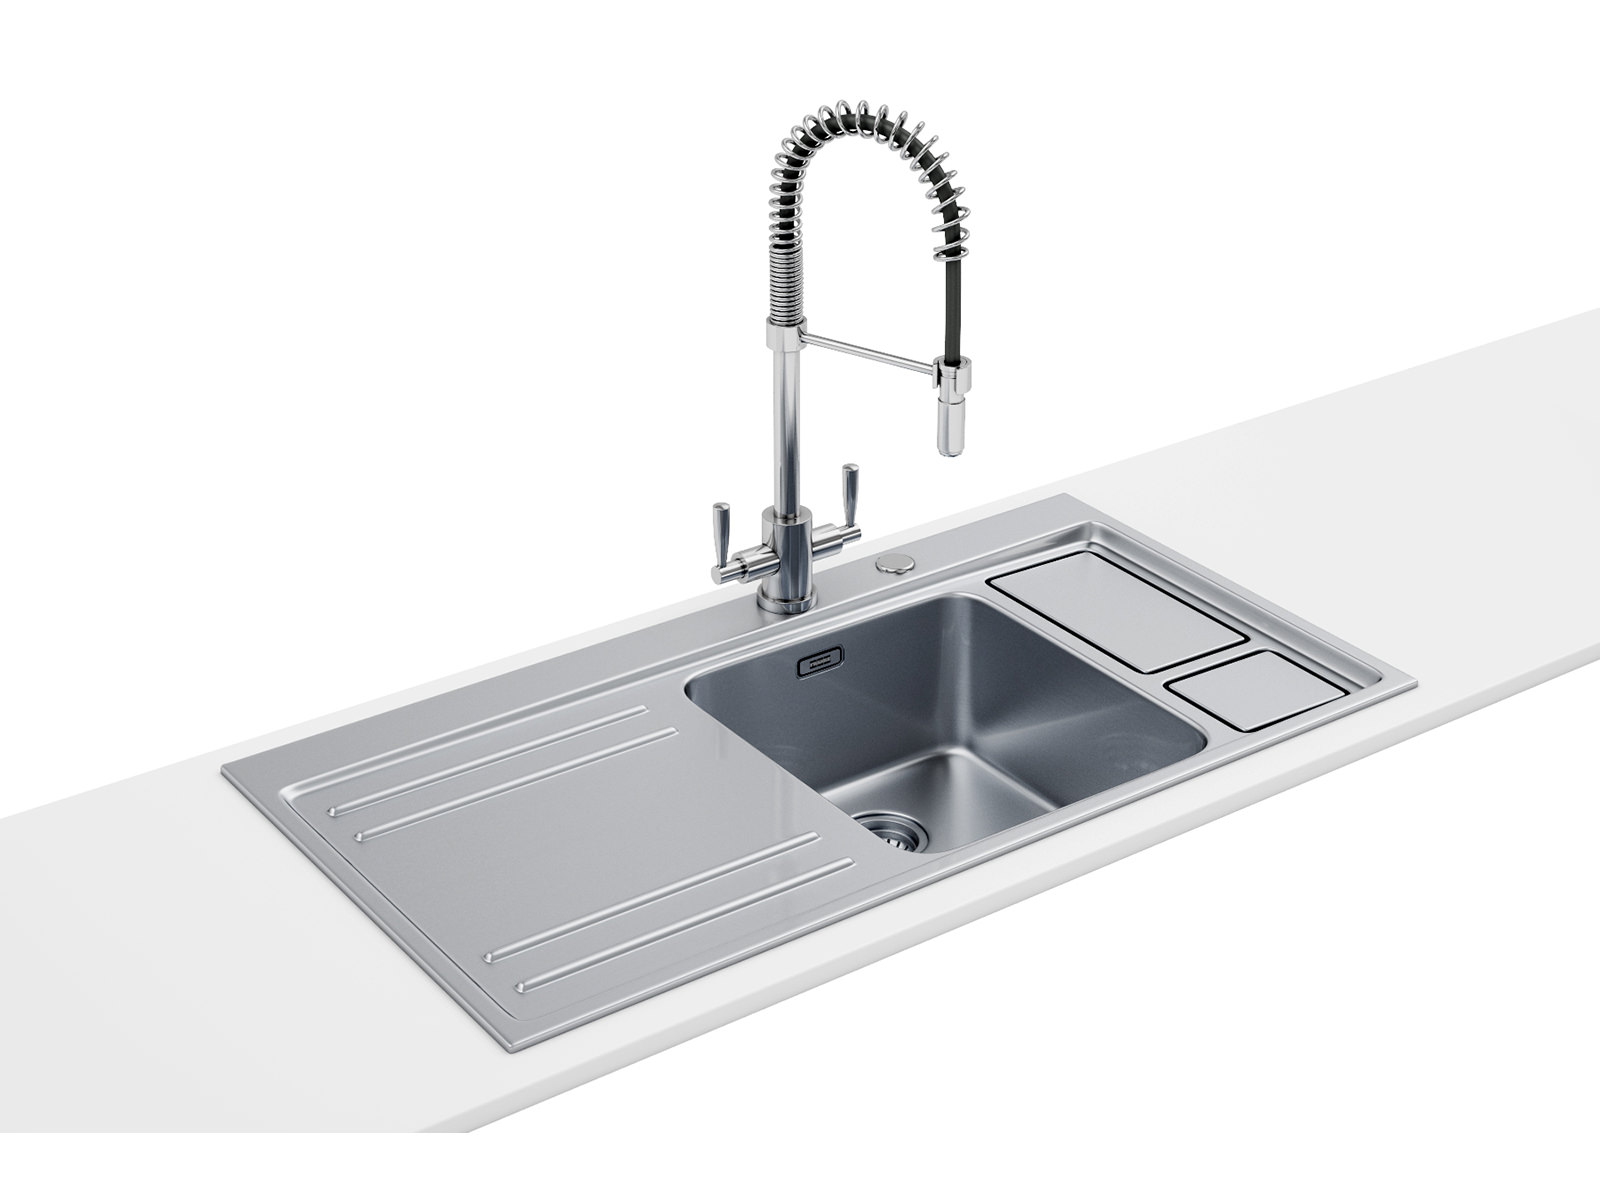 Franke Ss Sinks : Franke Largo Workcentre DP LAX 211-W-36 1.0 B Stainless Steel Sink And ...